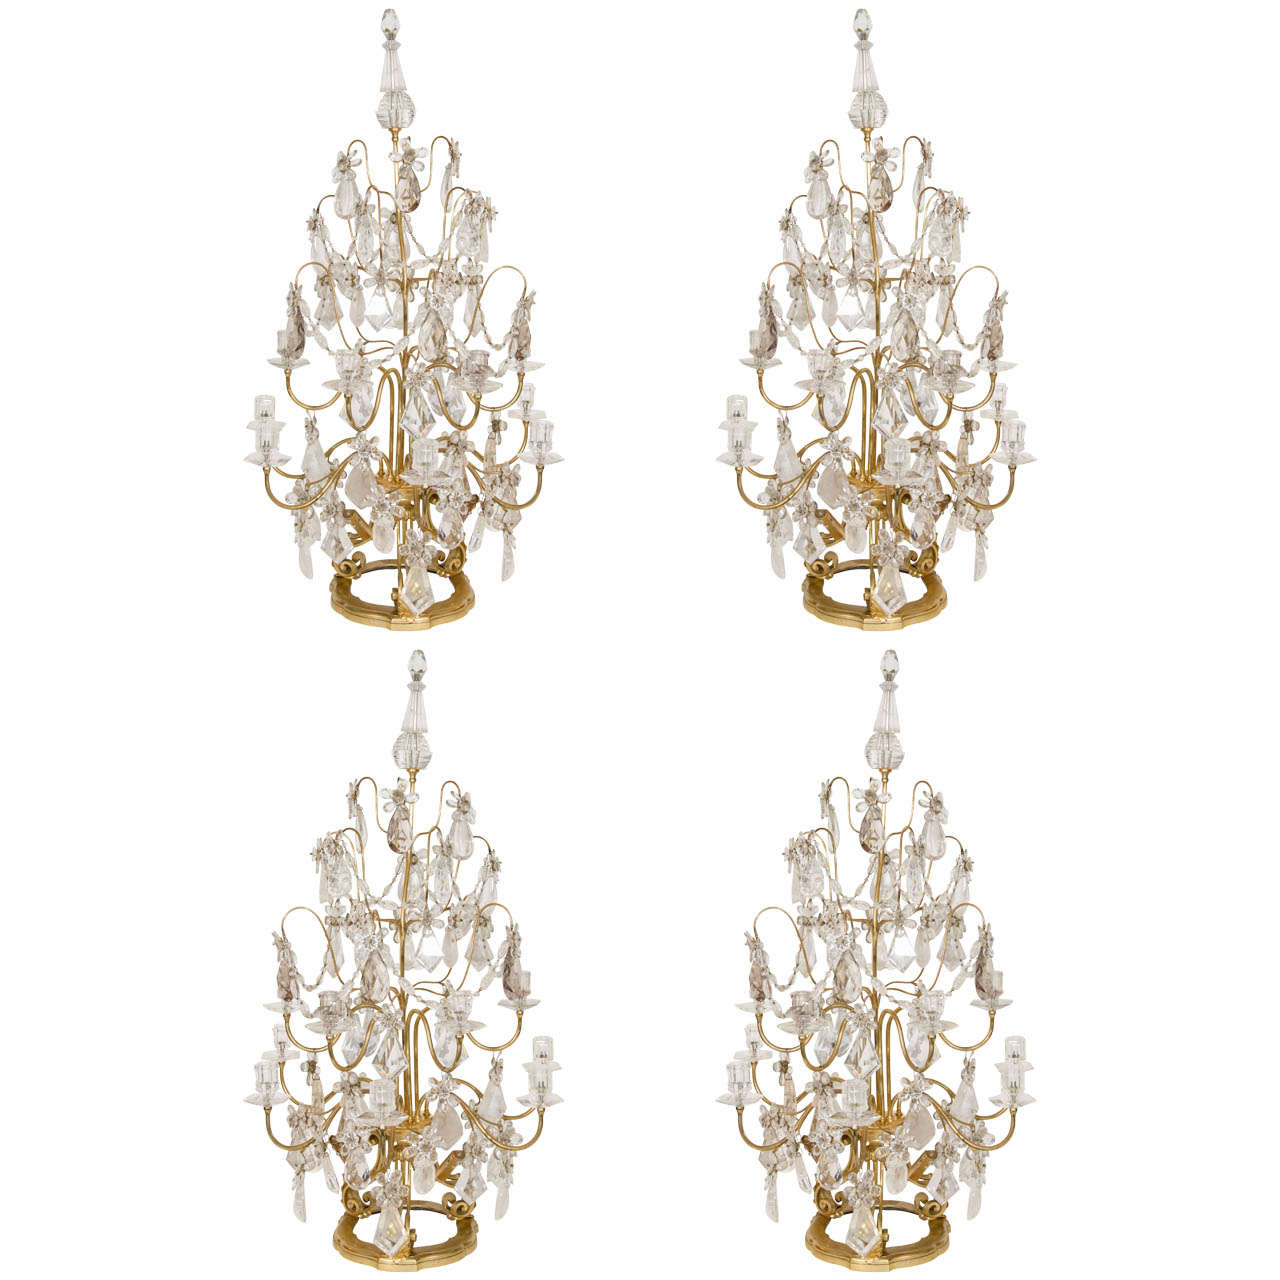 Set of French Louis XVI Style Gilt Bronze and Cut Rock Crystal Candelabra Lamps